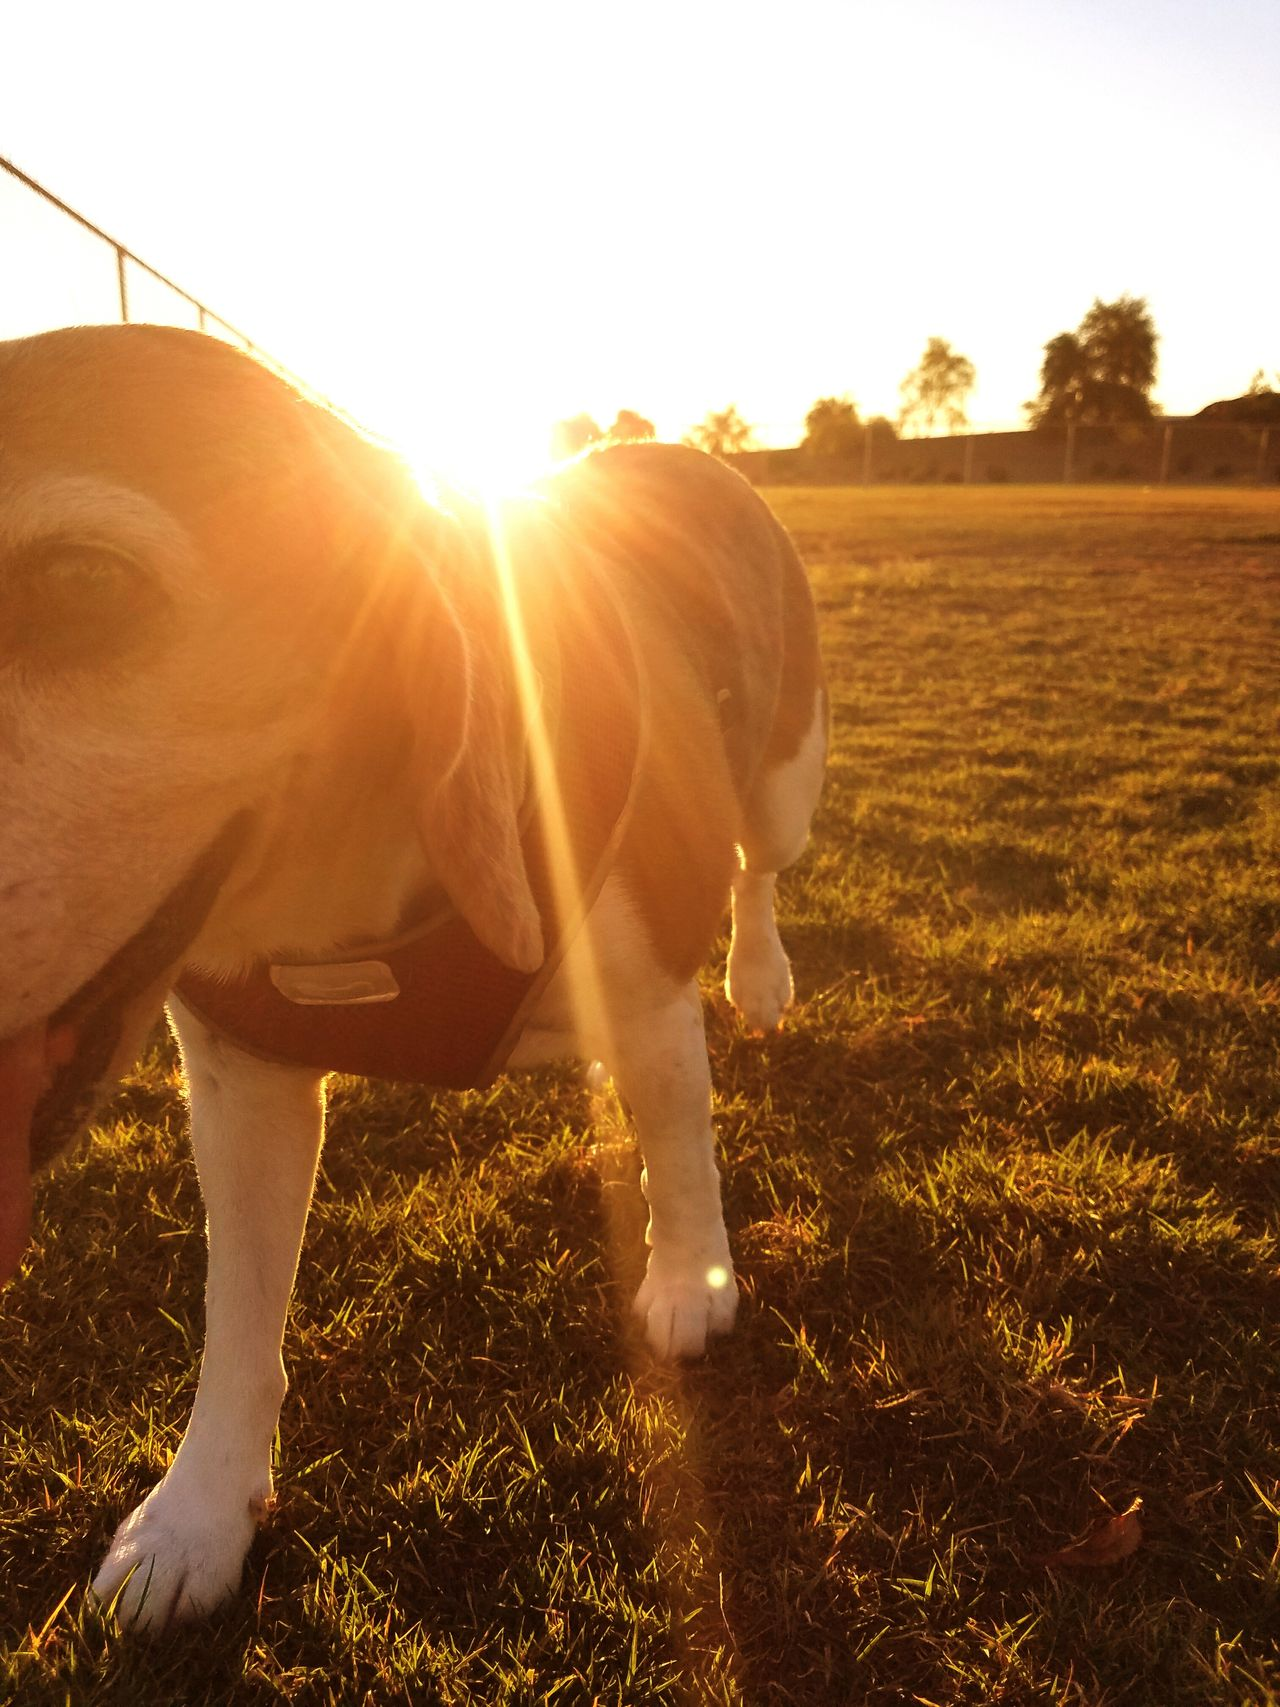 Horse Sunlight Domestic Animals Animal Themes Outdoors Mammal Sunbeam Ranch One Animal Hoofed Mammal Livestock Nature Day No People Sky Beaglelovers Beagle Love Beagle Dog❤ Dogslife Dog Love